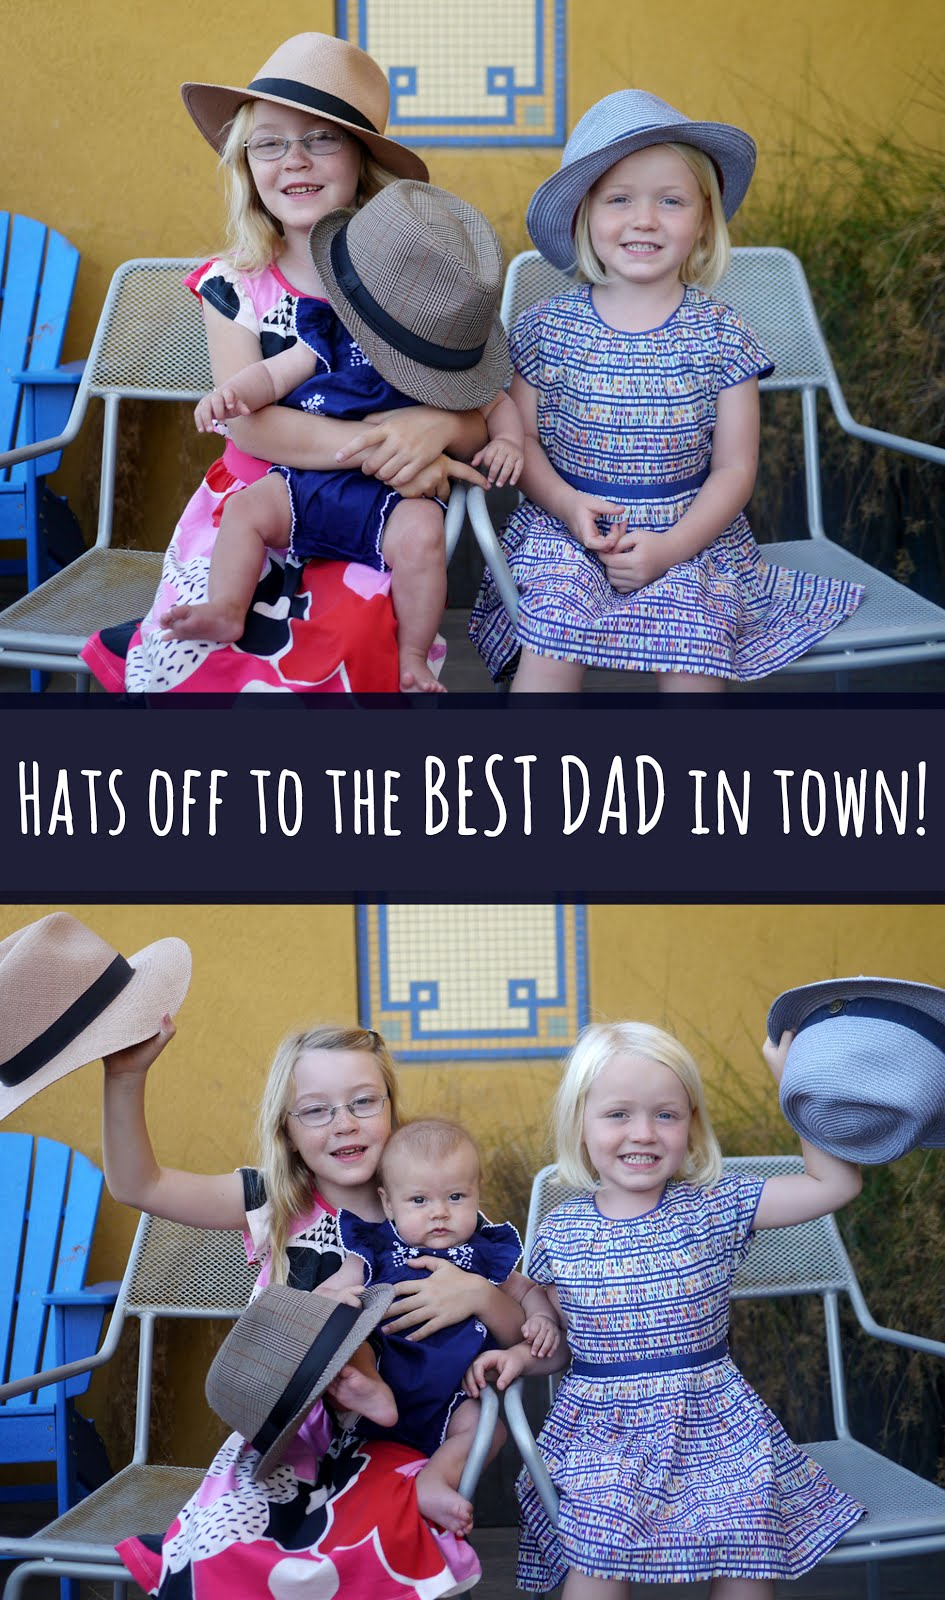 Father's Day: Hats Off to the Best Dad